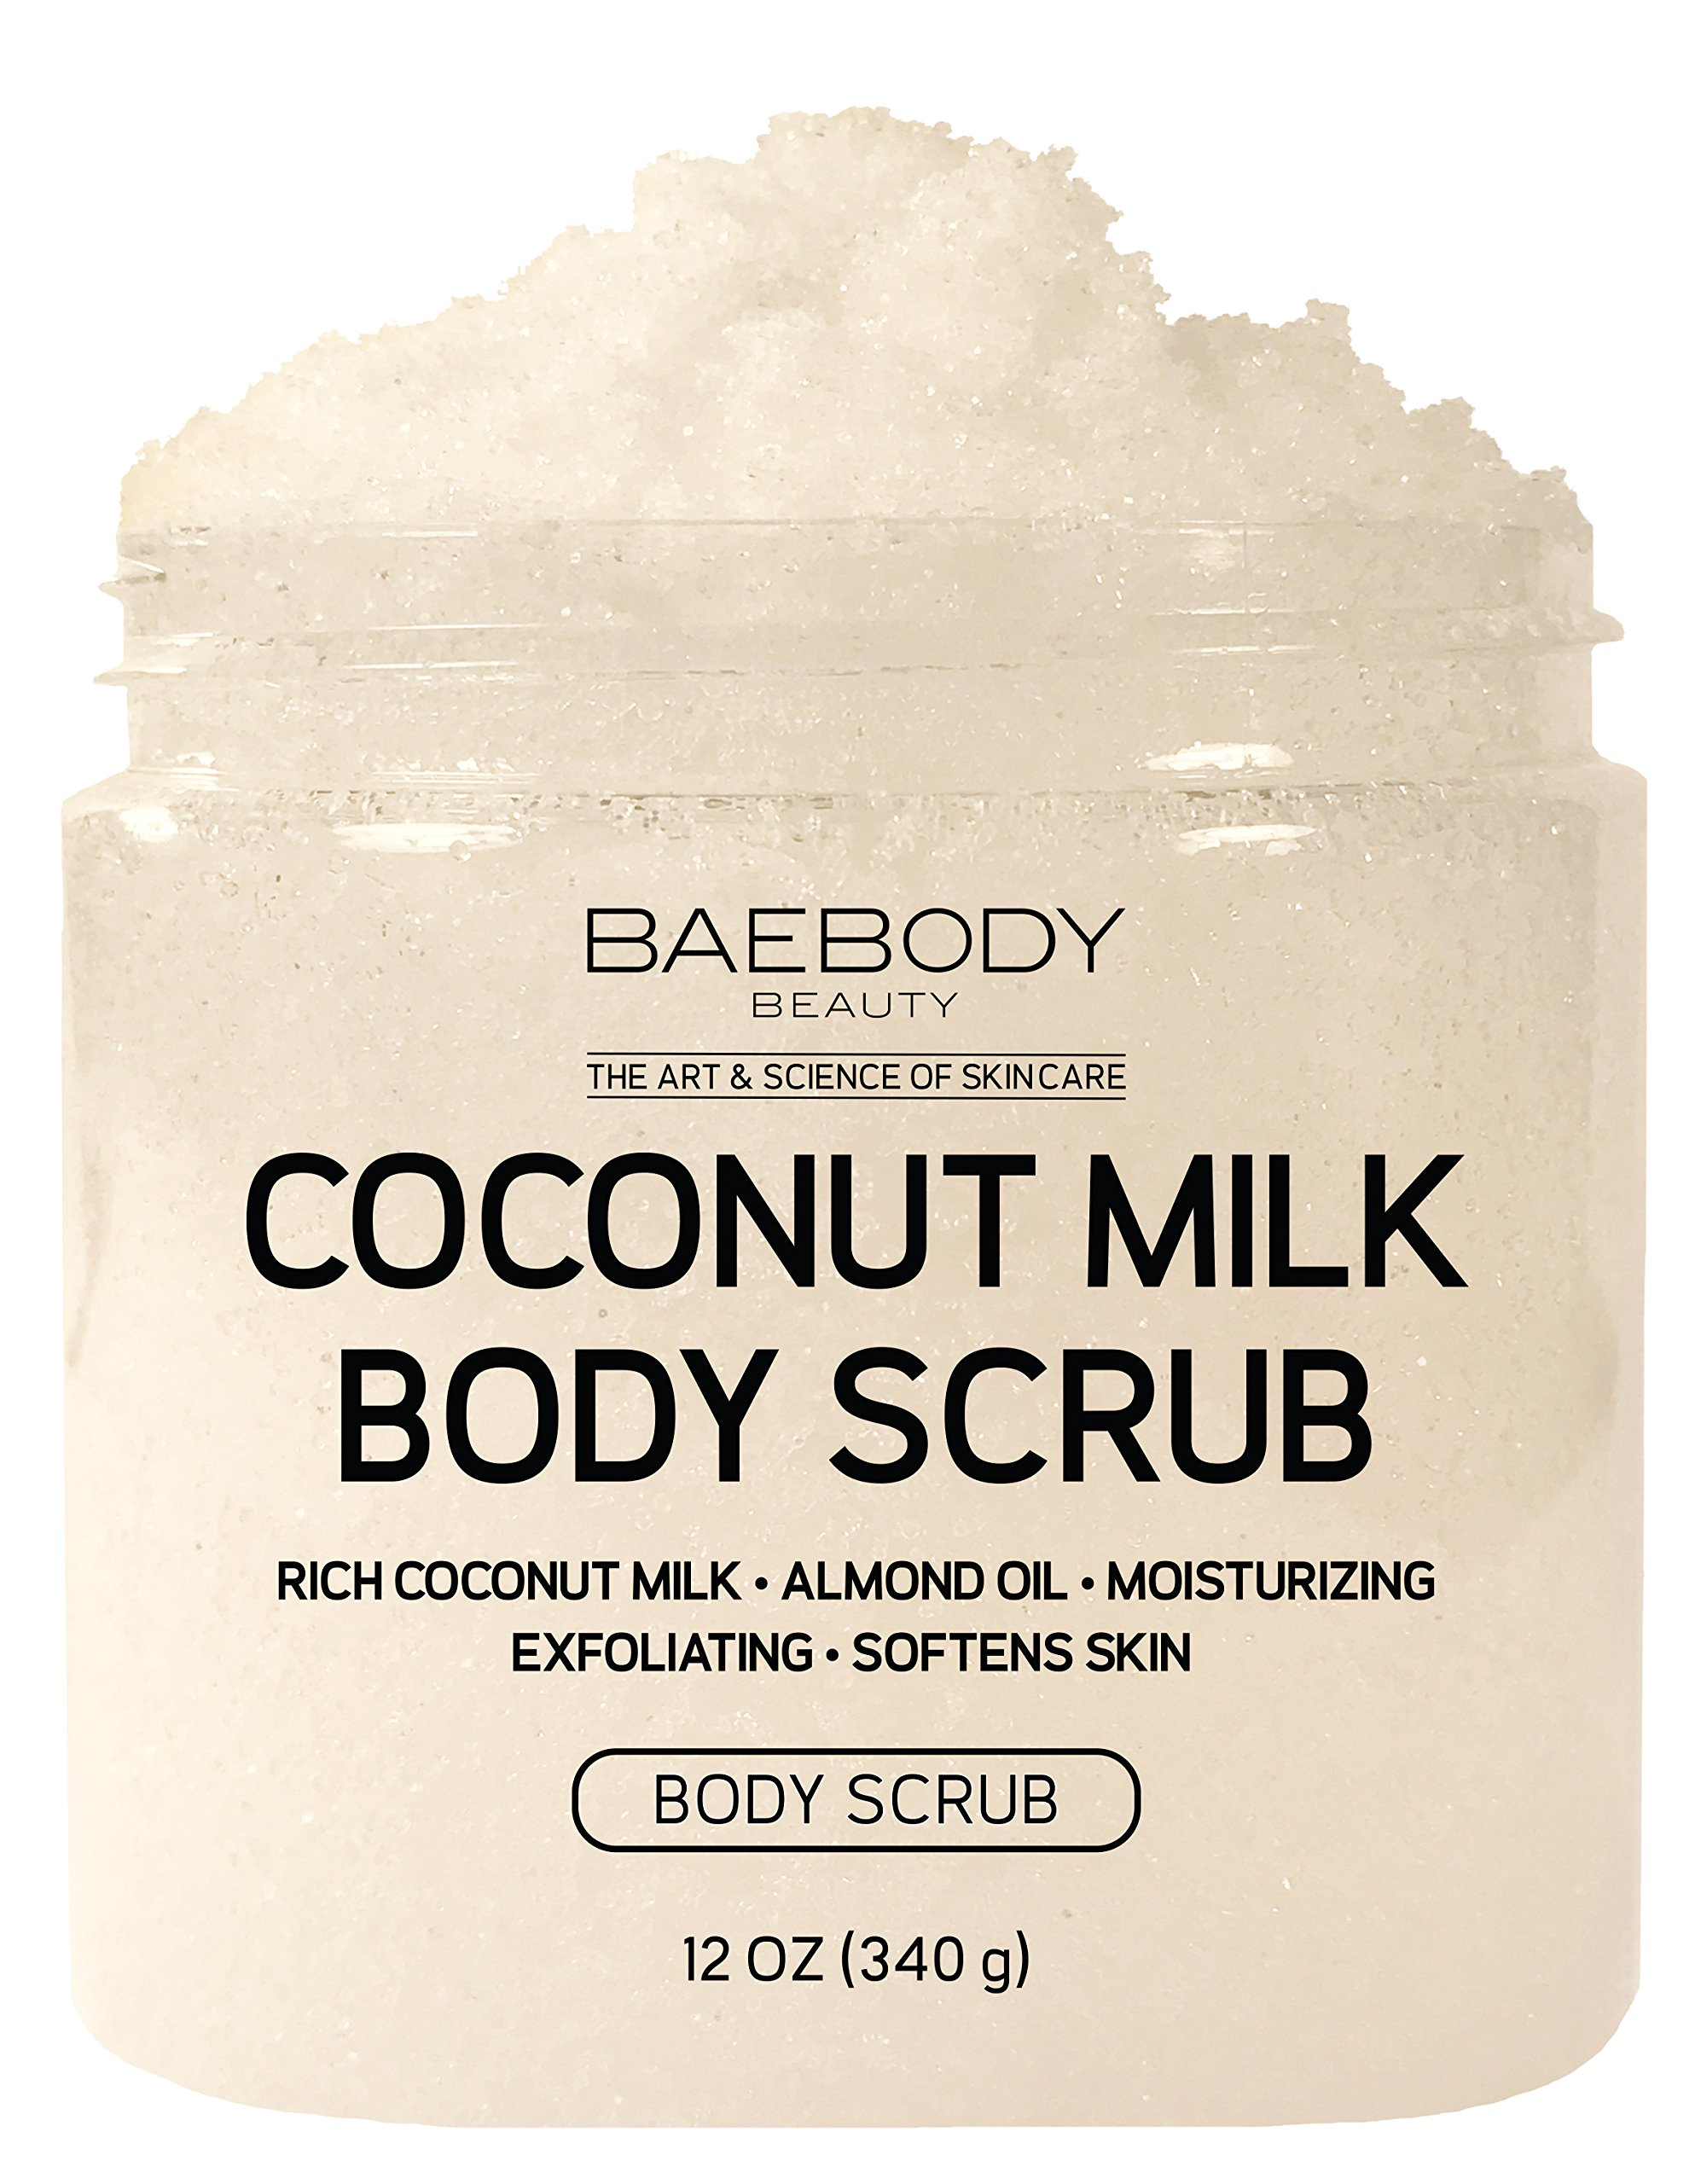 Baebody Coconut Milk Body Scrub: With Dead Sea Salt, Almond Oil, and Vitamin E. – Exfoliator, Moisturizer Promoting Radiant Skin 12oz.